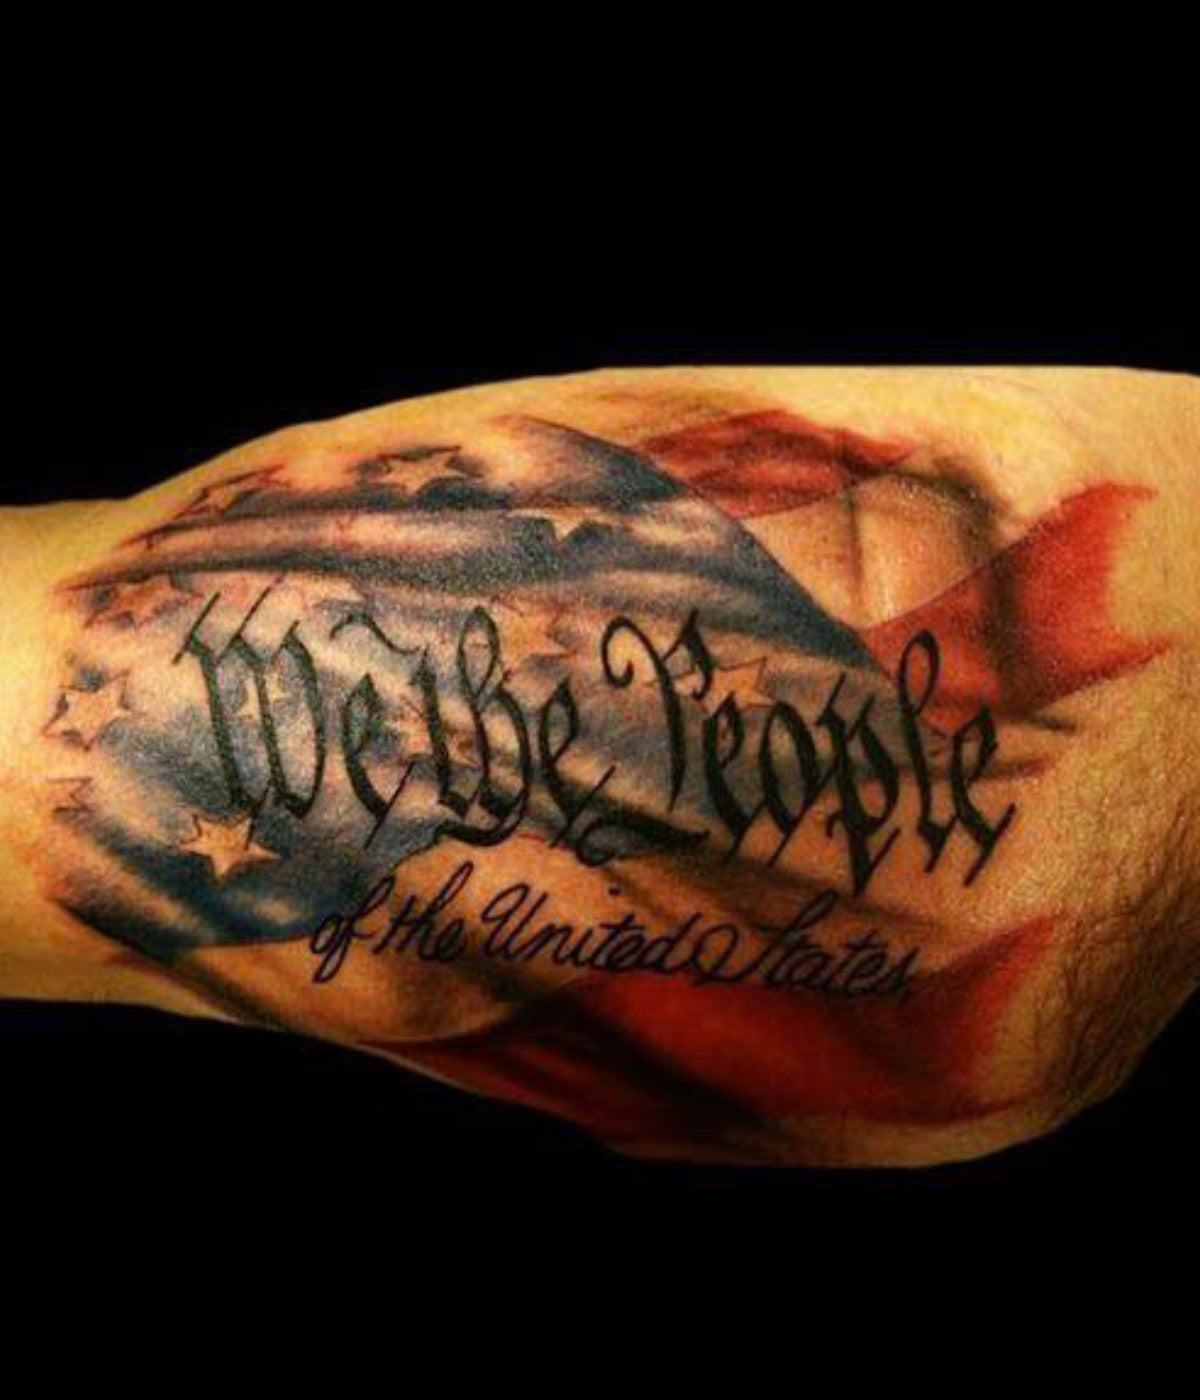 Top 10 patriotic american tattoos sullen art co for Best tattoo artists in america